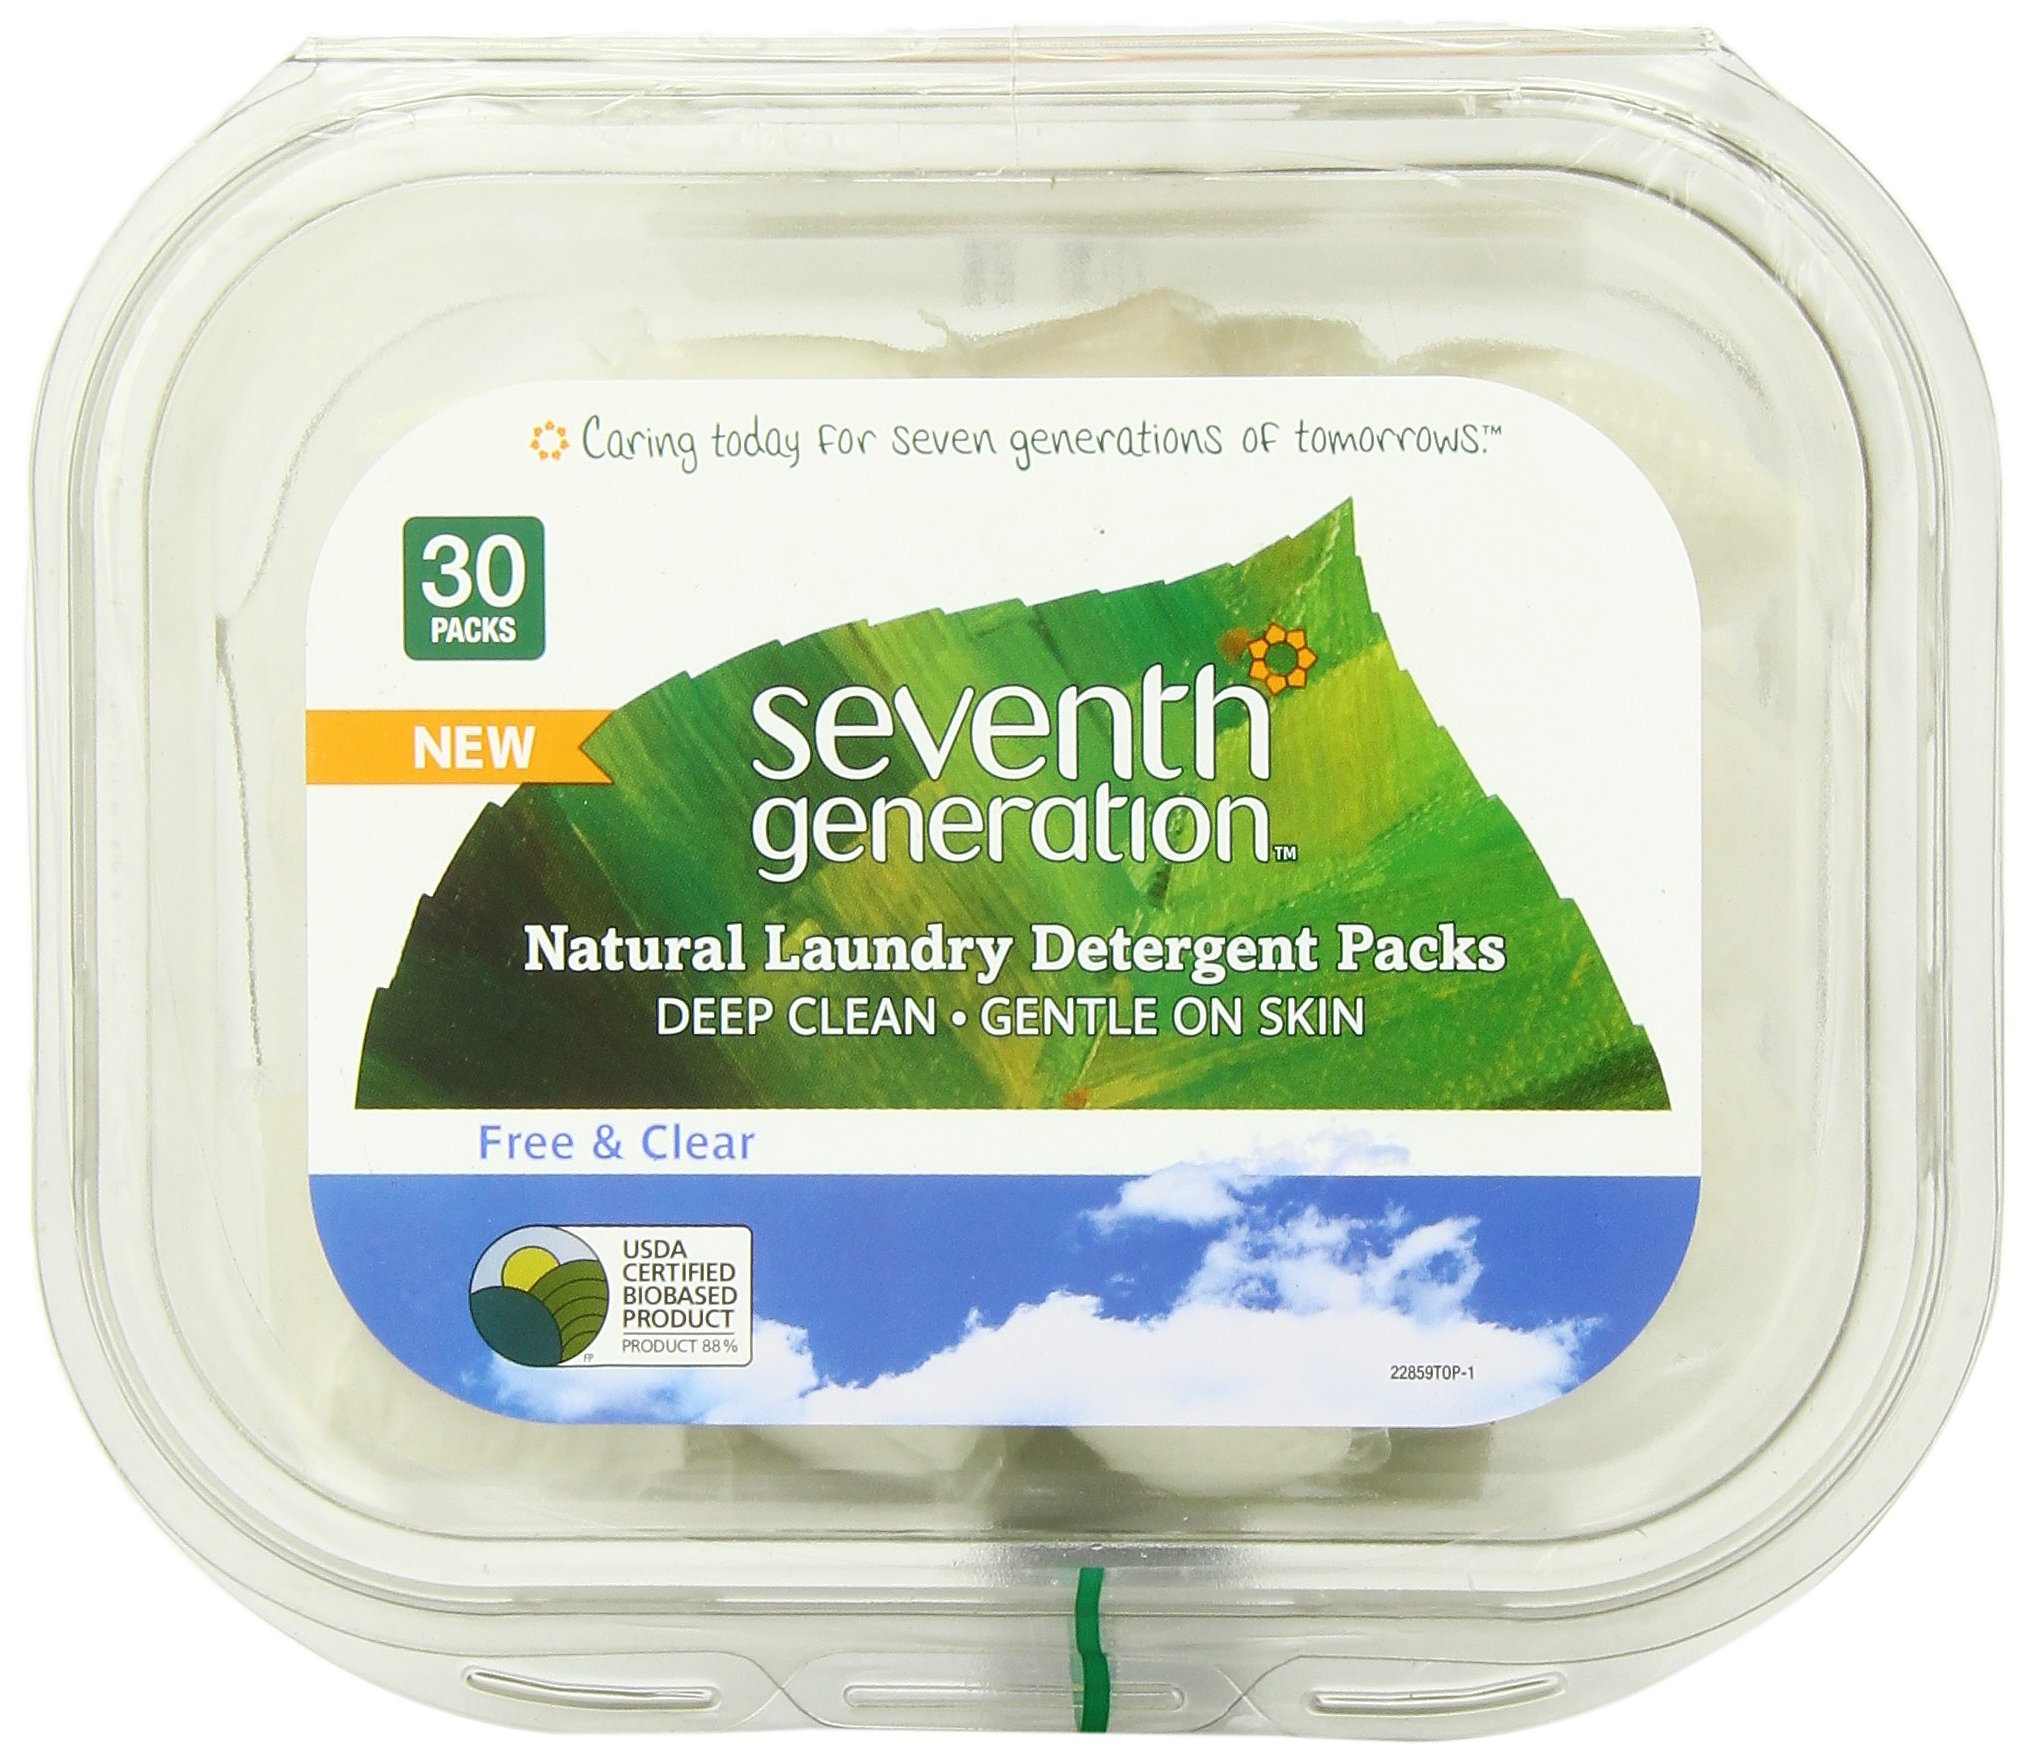 Seventh Generation Natural Laundry Detergent Packs, Free and Clear, 30 Count (pack of 2) by Seventh Generation (Image #3)